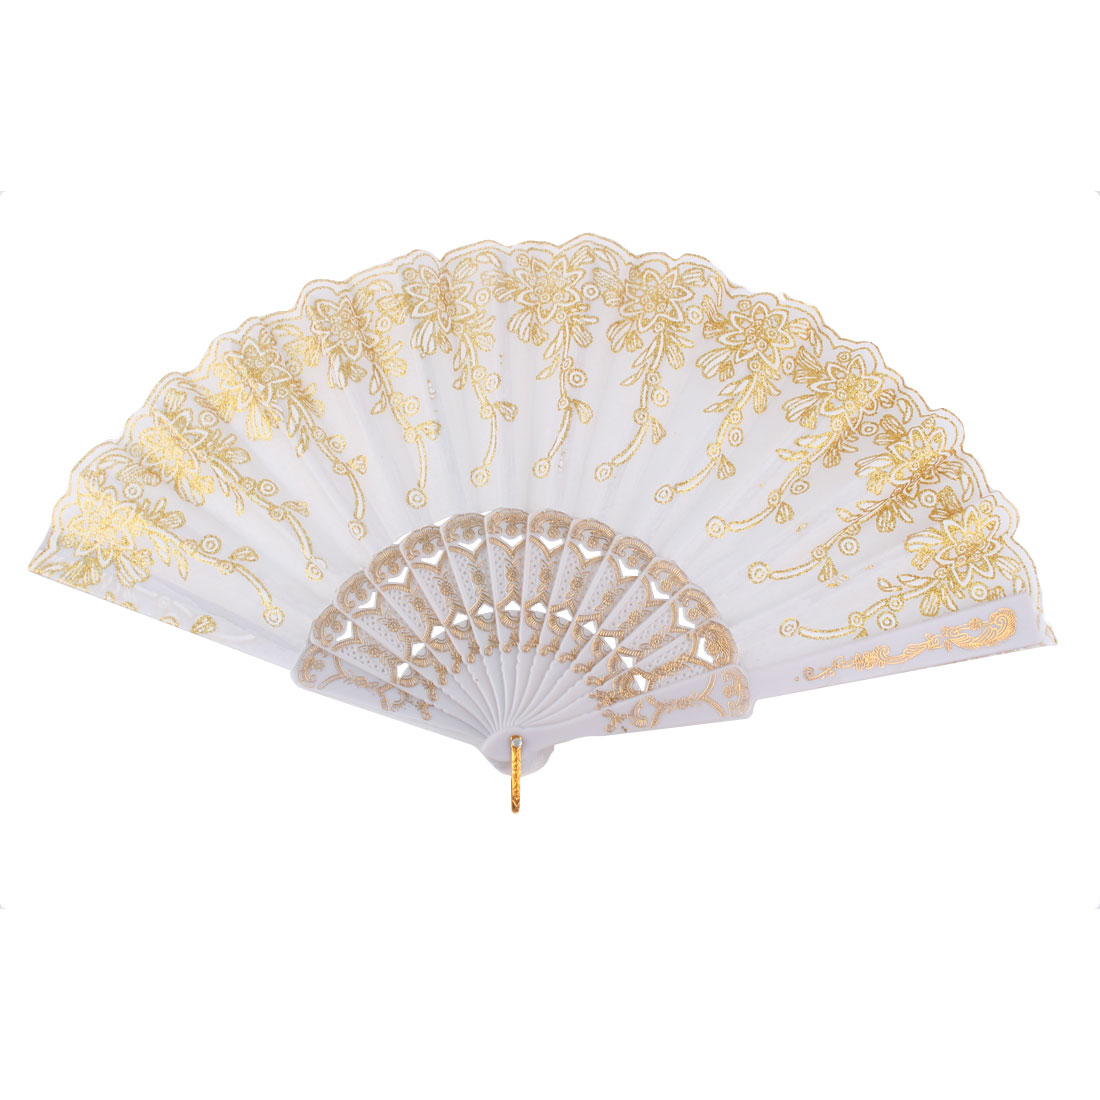 Dancing Wedding Chinese Style Flower Pattern Folding Hand Fan Gold Tone White